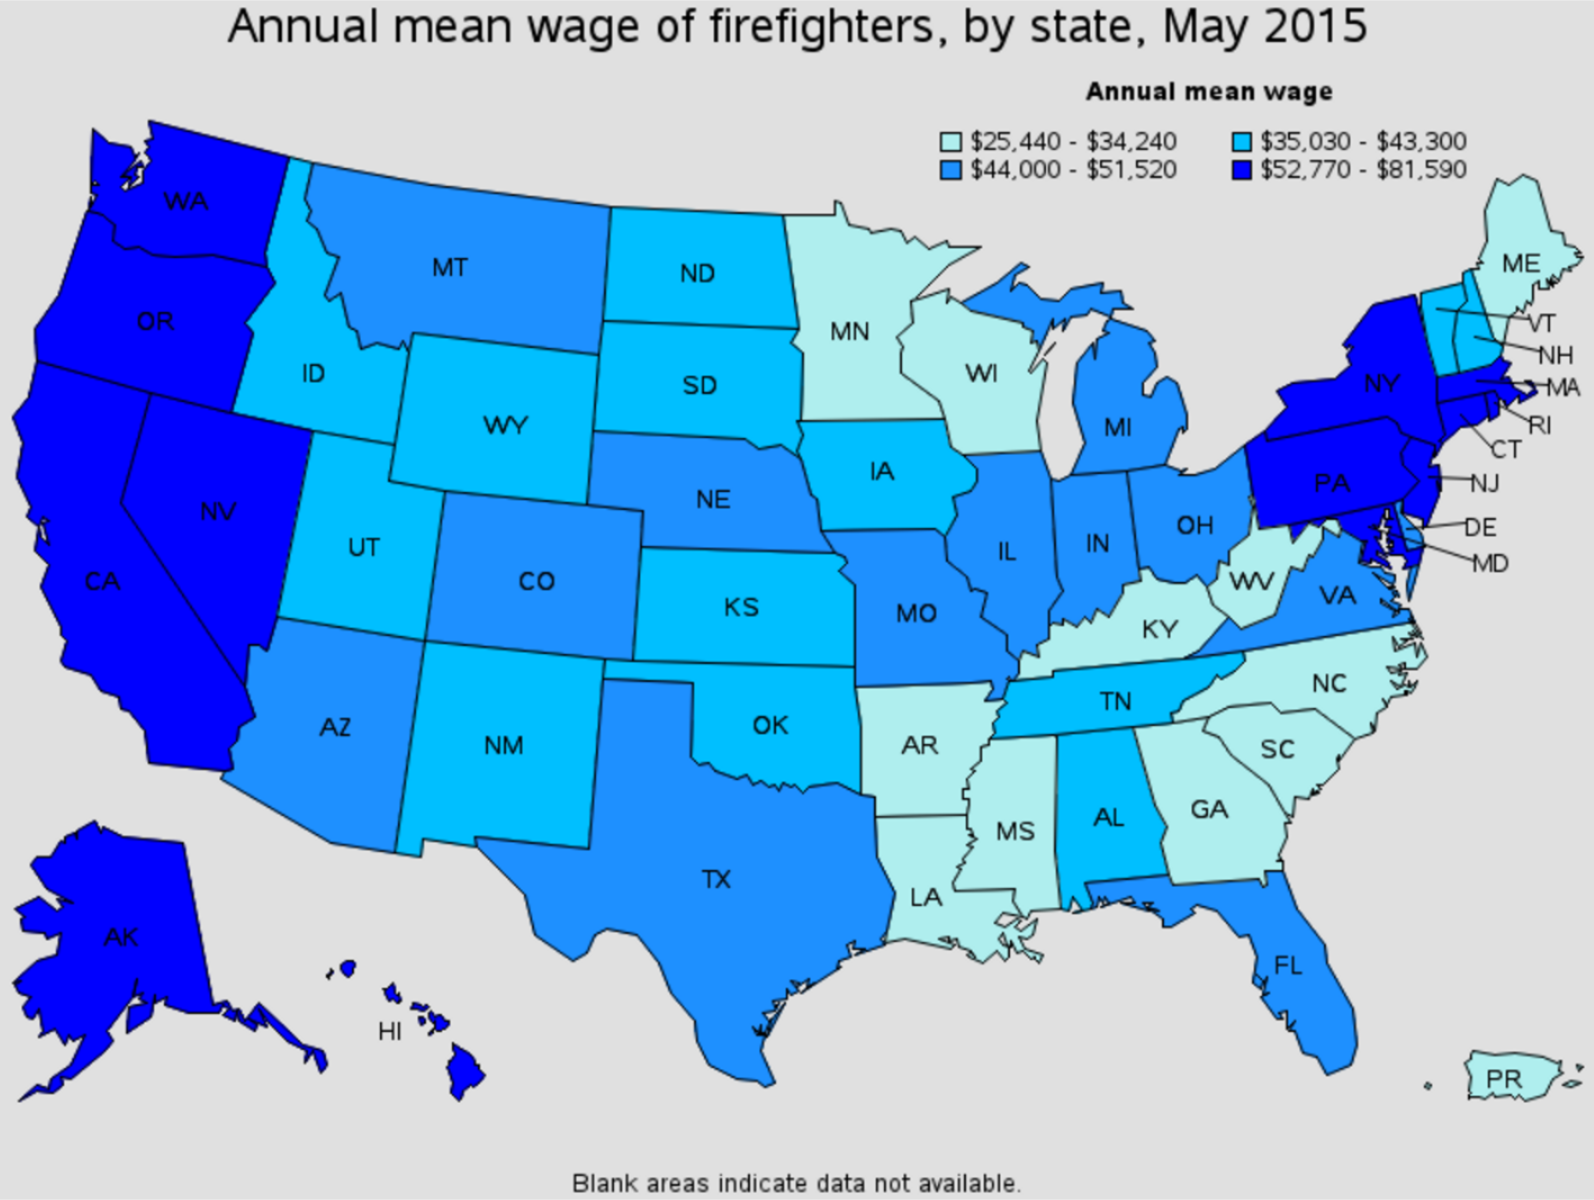 firefighter average salary by state Green Bay Wisconsin